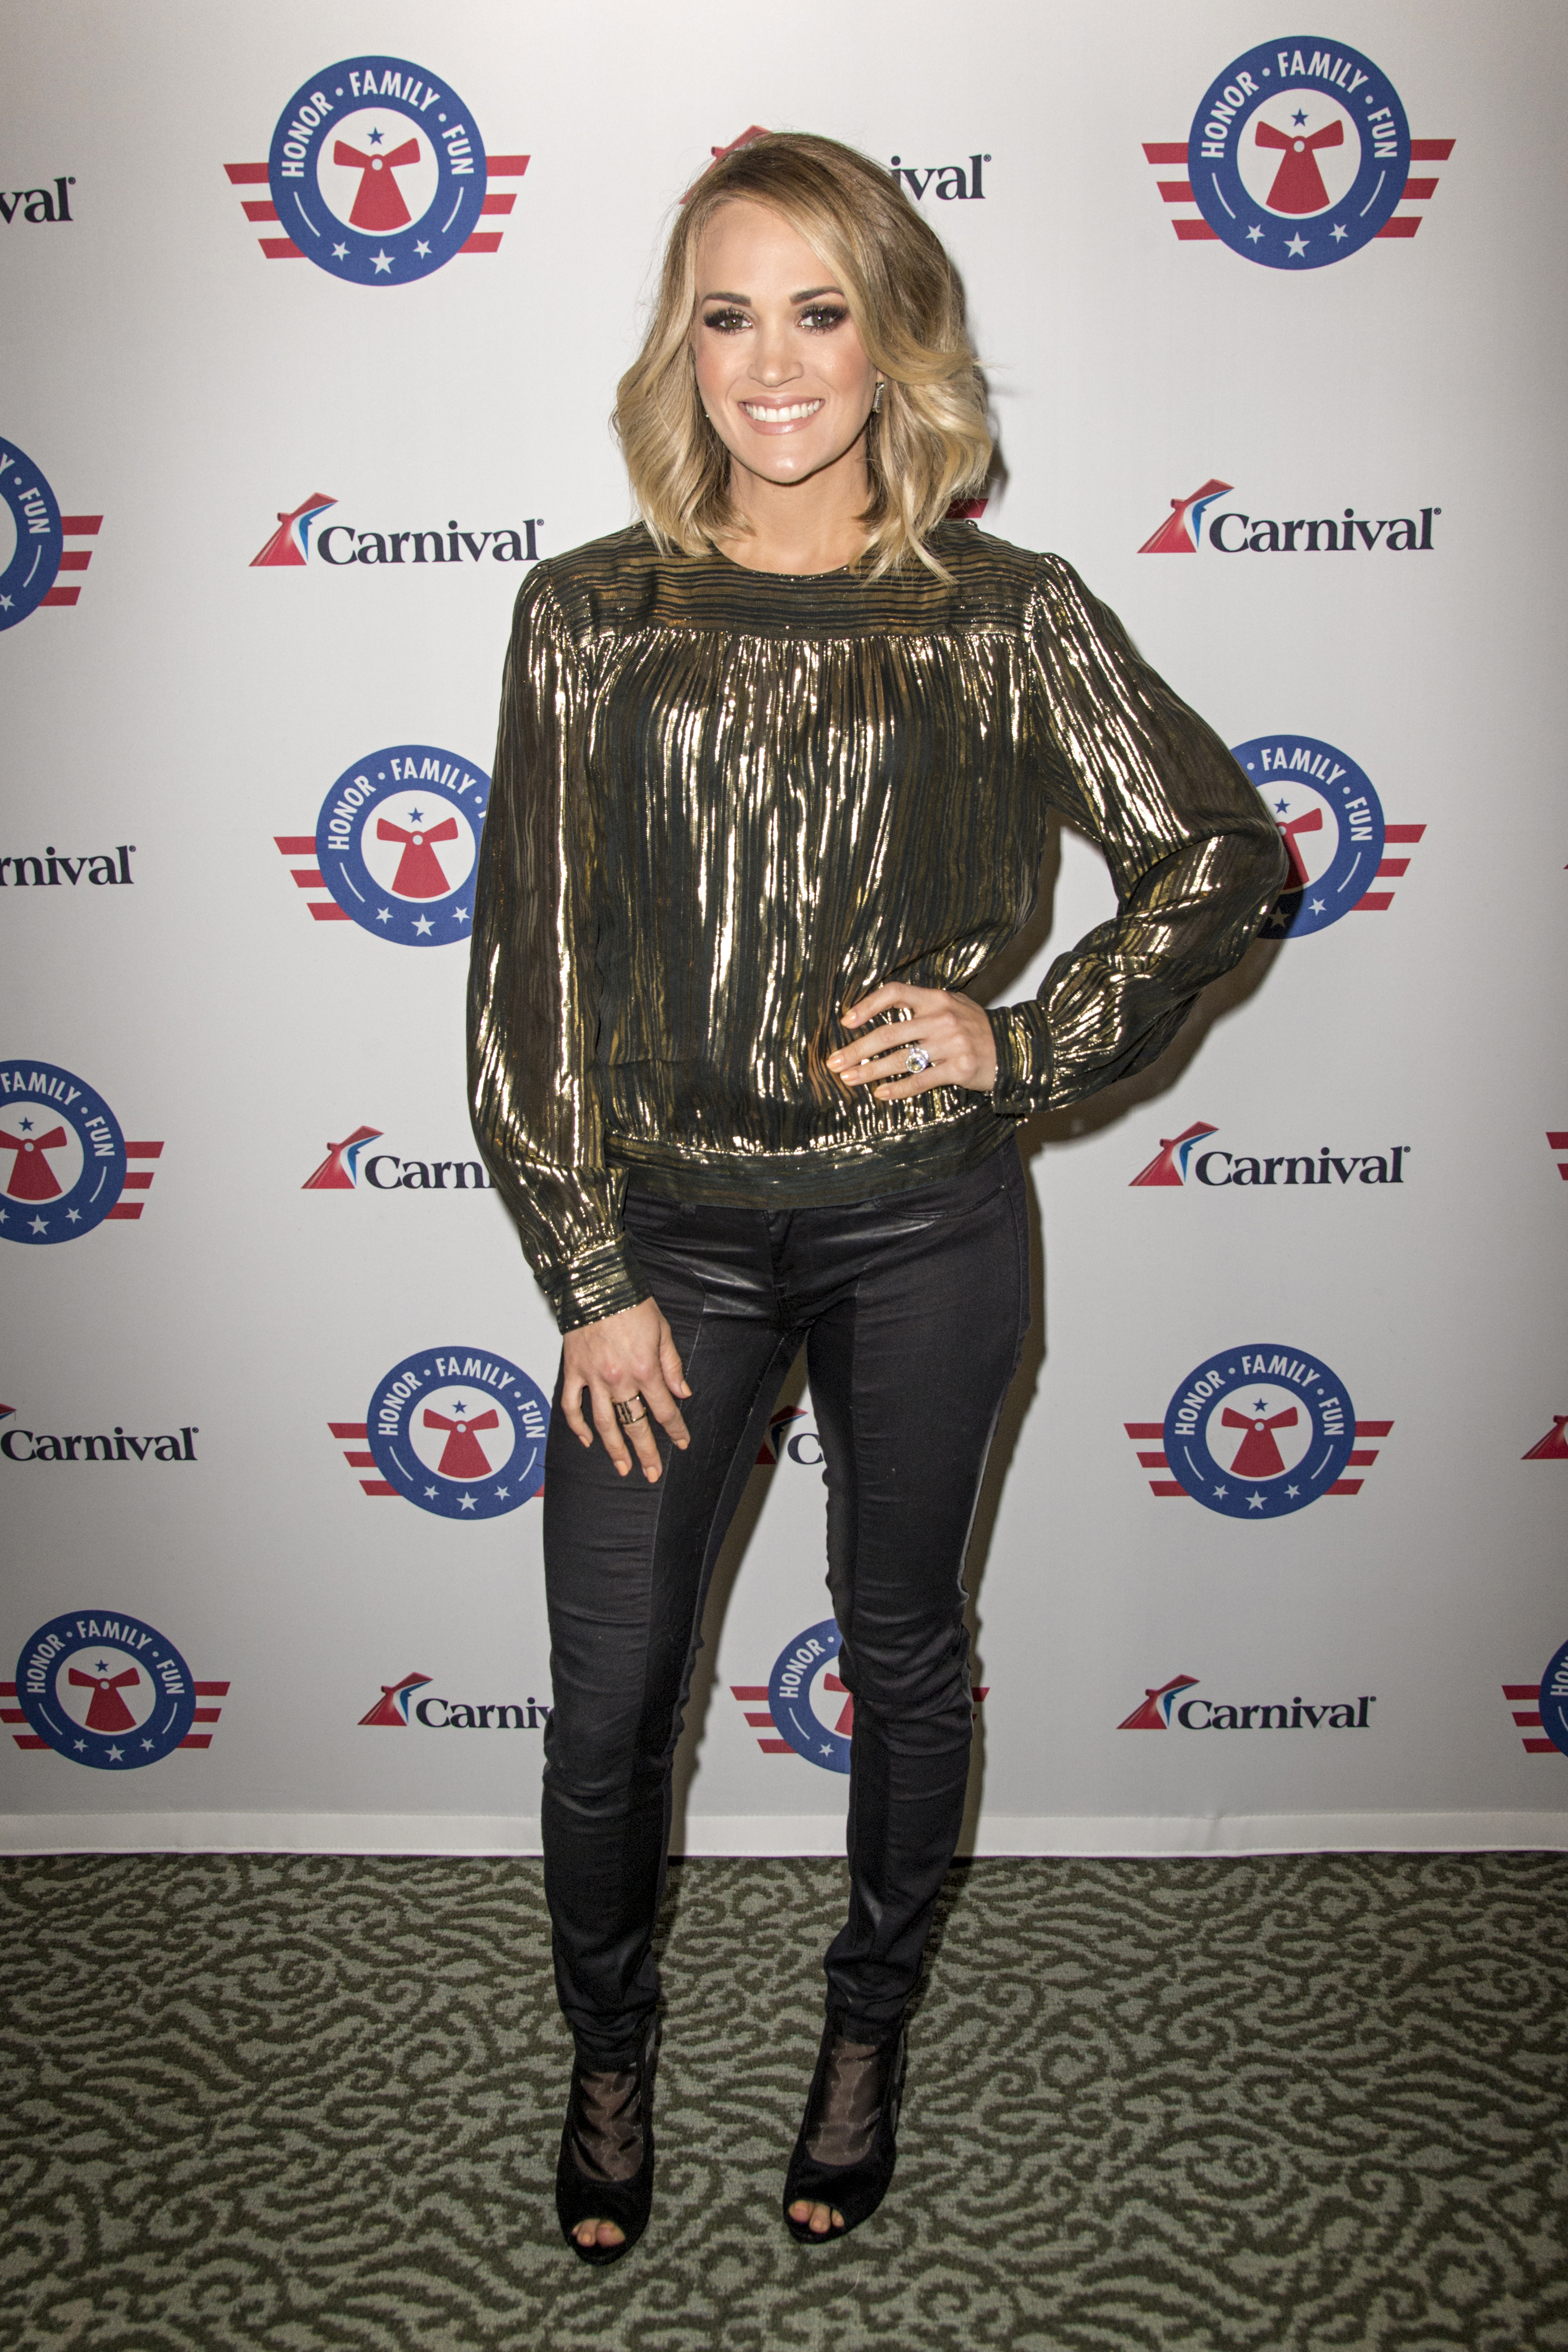 Country Music Superstar Carrie Underwood Performs to a Sold-Out Crowd Aboard Carnival Imagination in Catalina Island